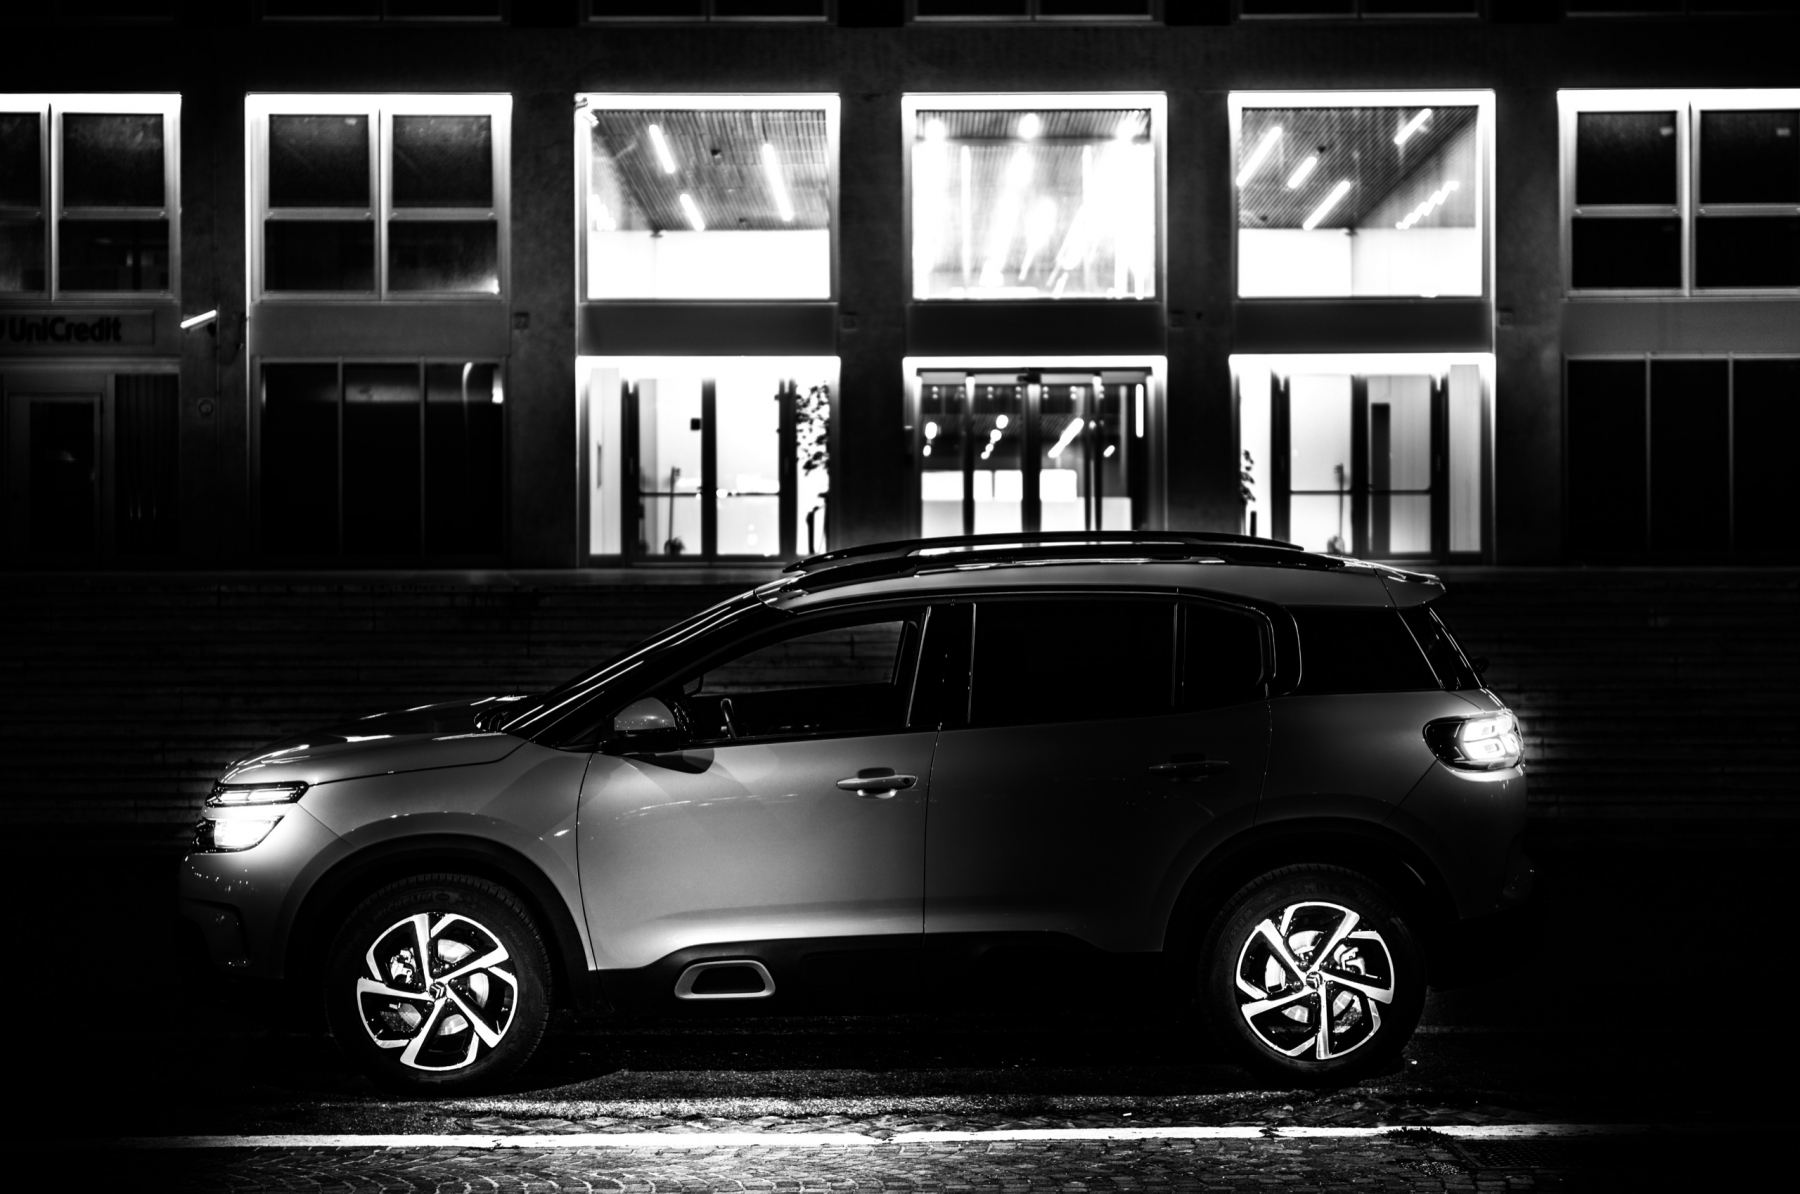 LR5_EDIT-EXPORT_CITROEN-C5-AIRCROSS_bn-3